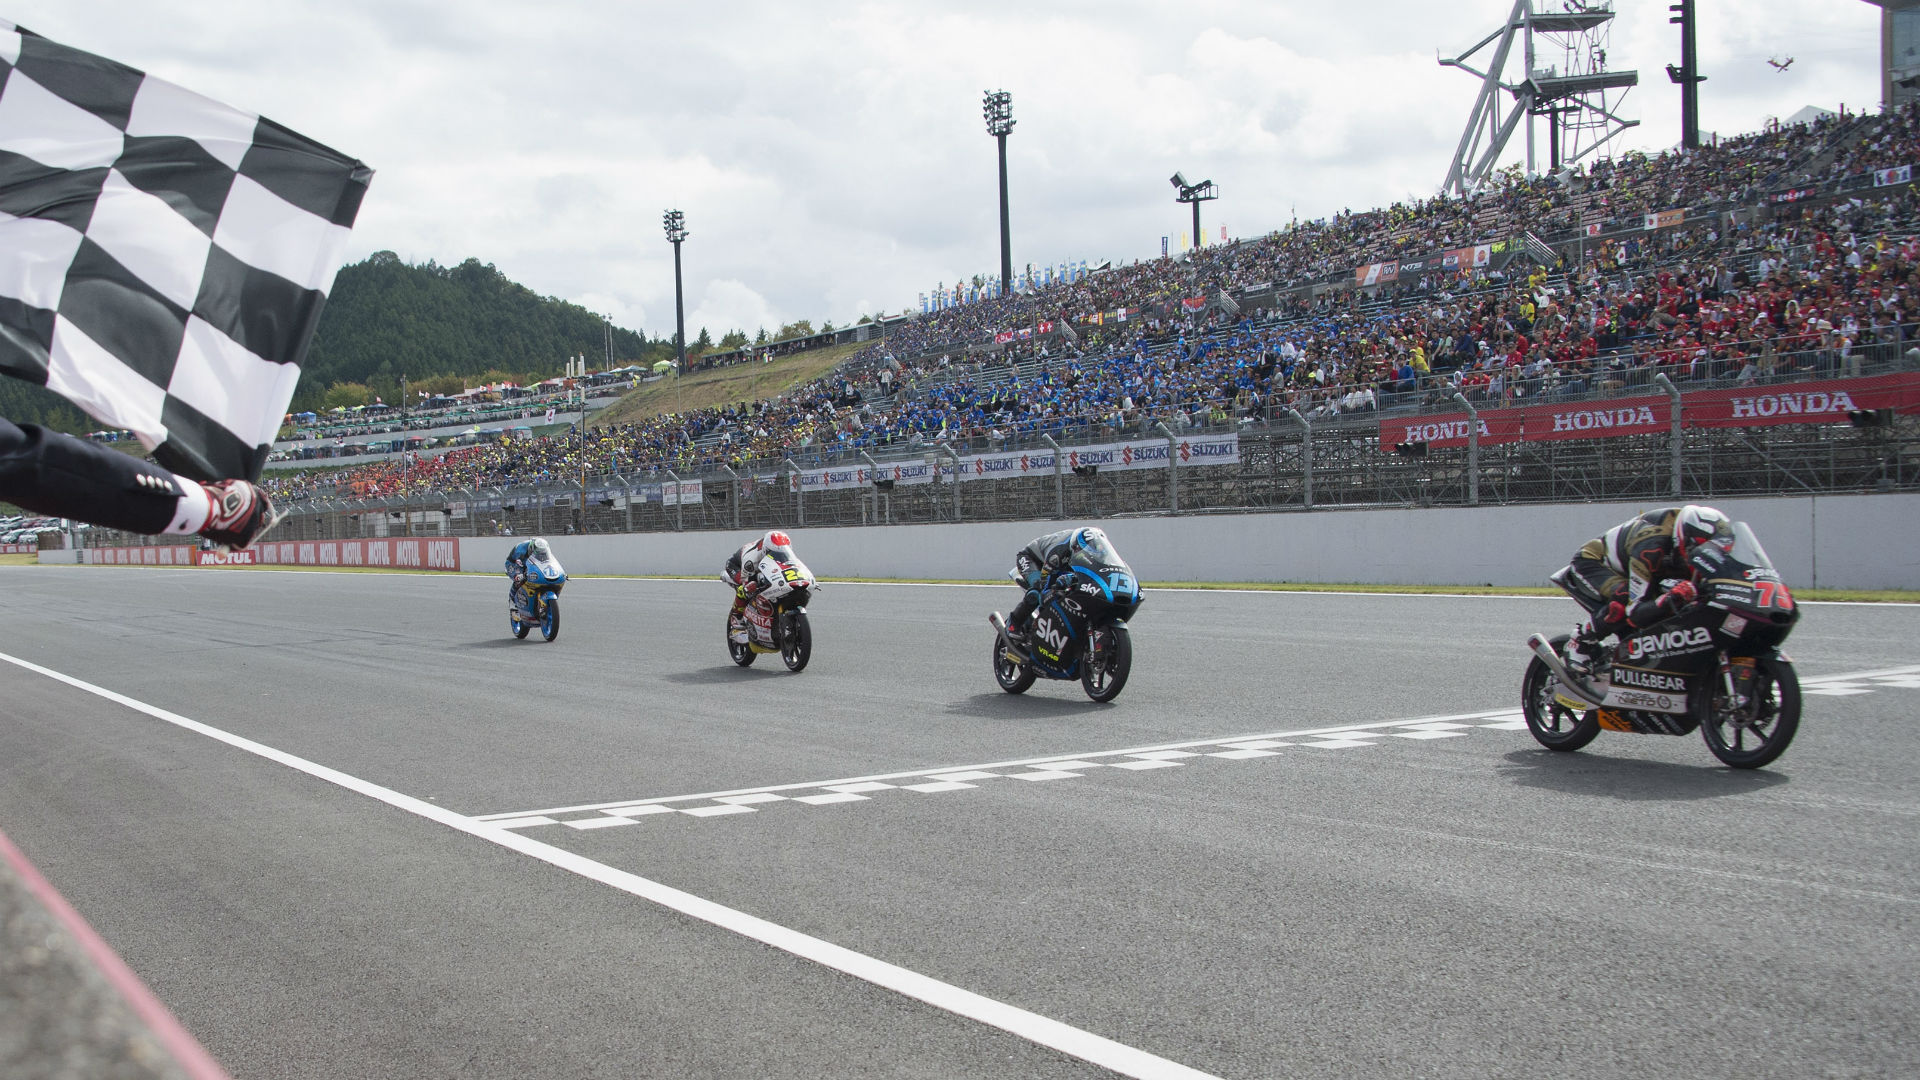 As MotoGP organisers continue to work on a revised schedule for the 2020 season, there will be no racing at Twin Ring Motegi in 2020.